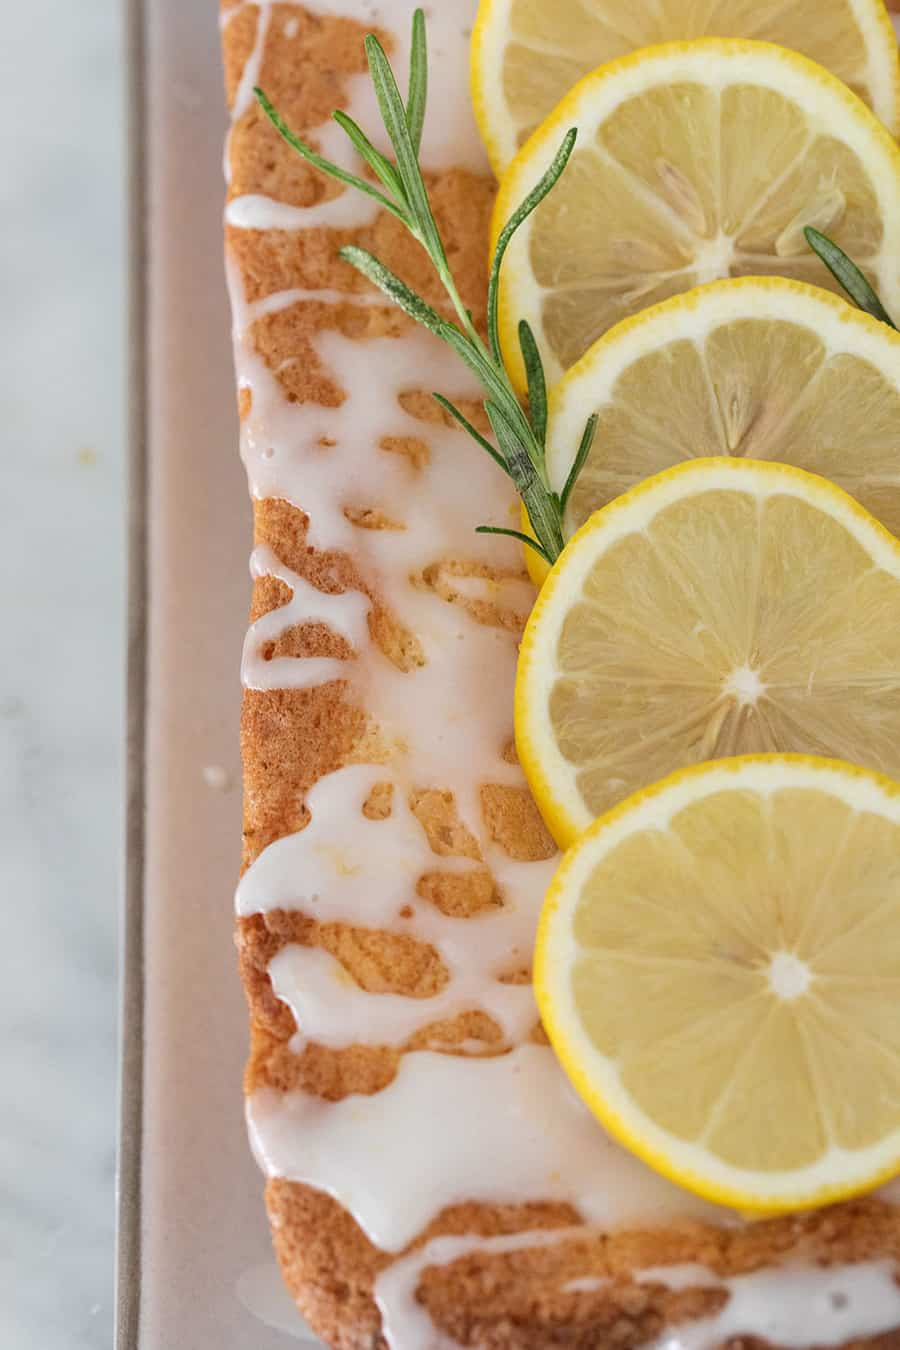 The top of a lemon loaf cake with sliced lemons and fresh rosemary,